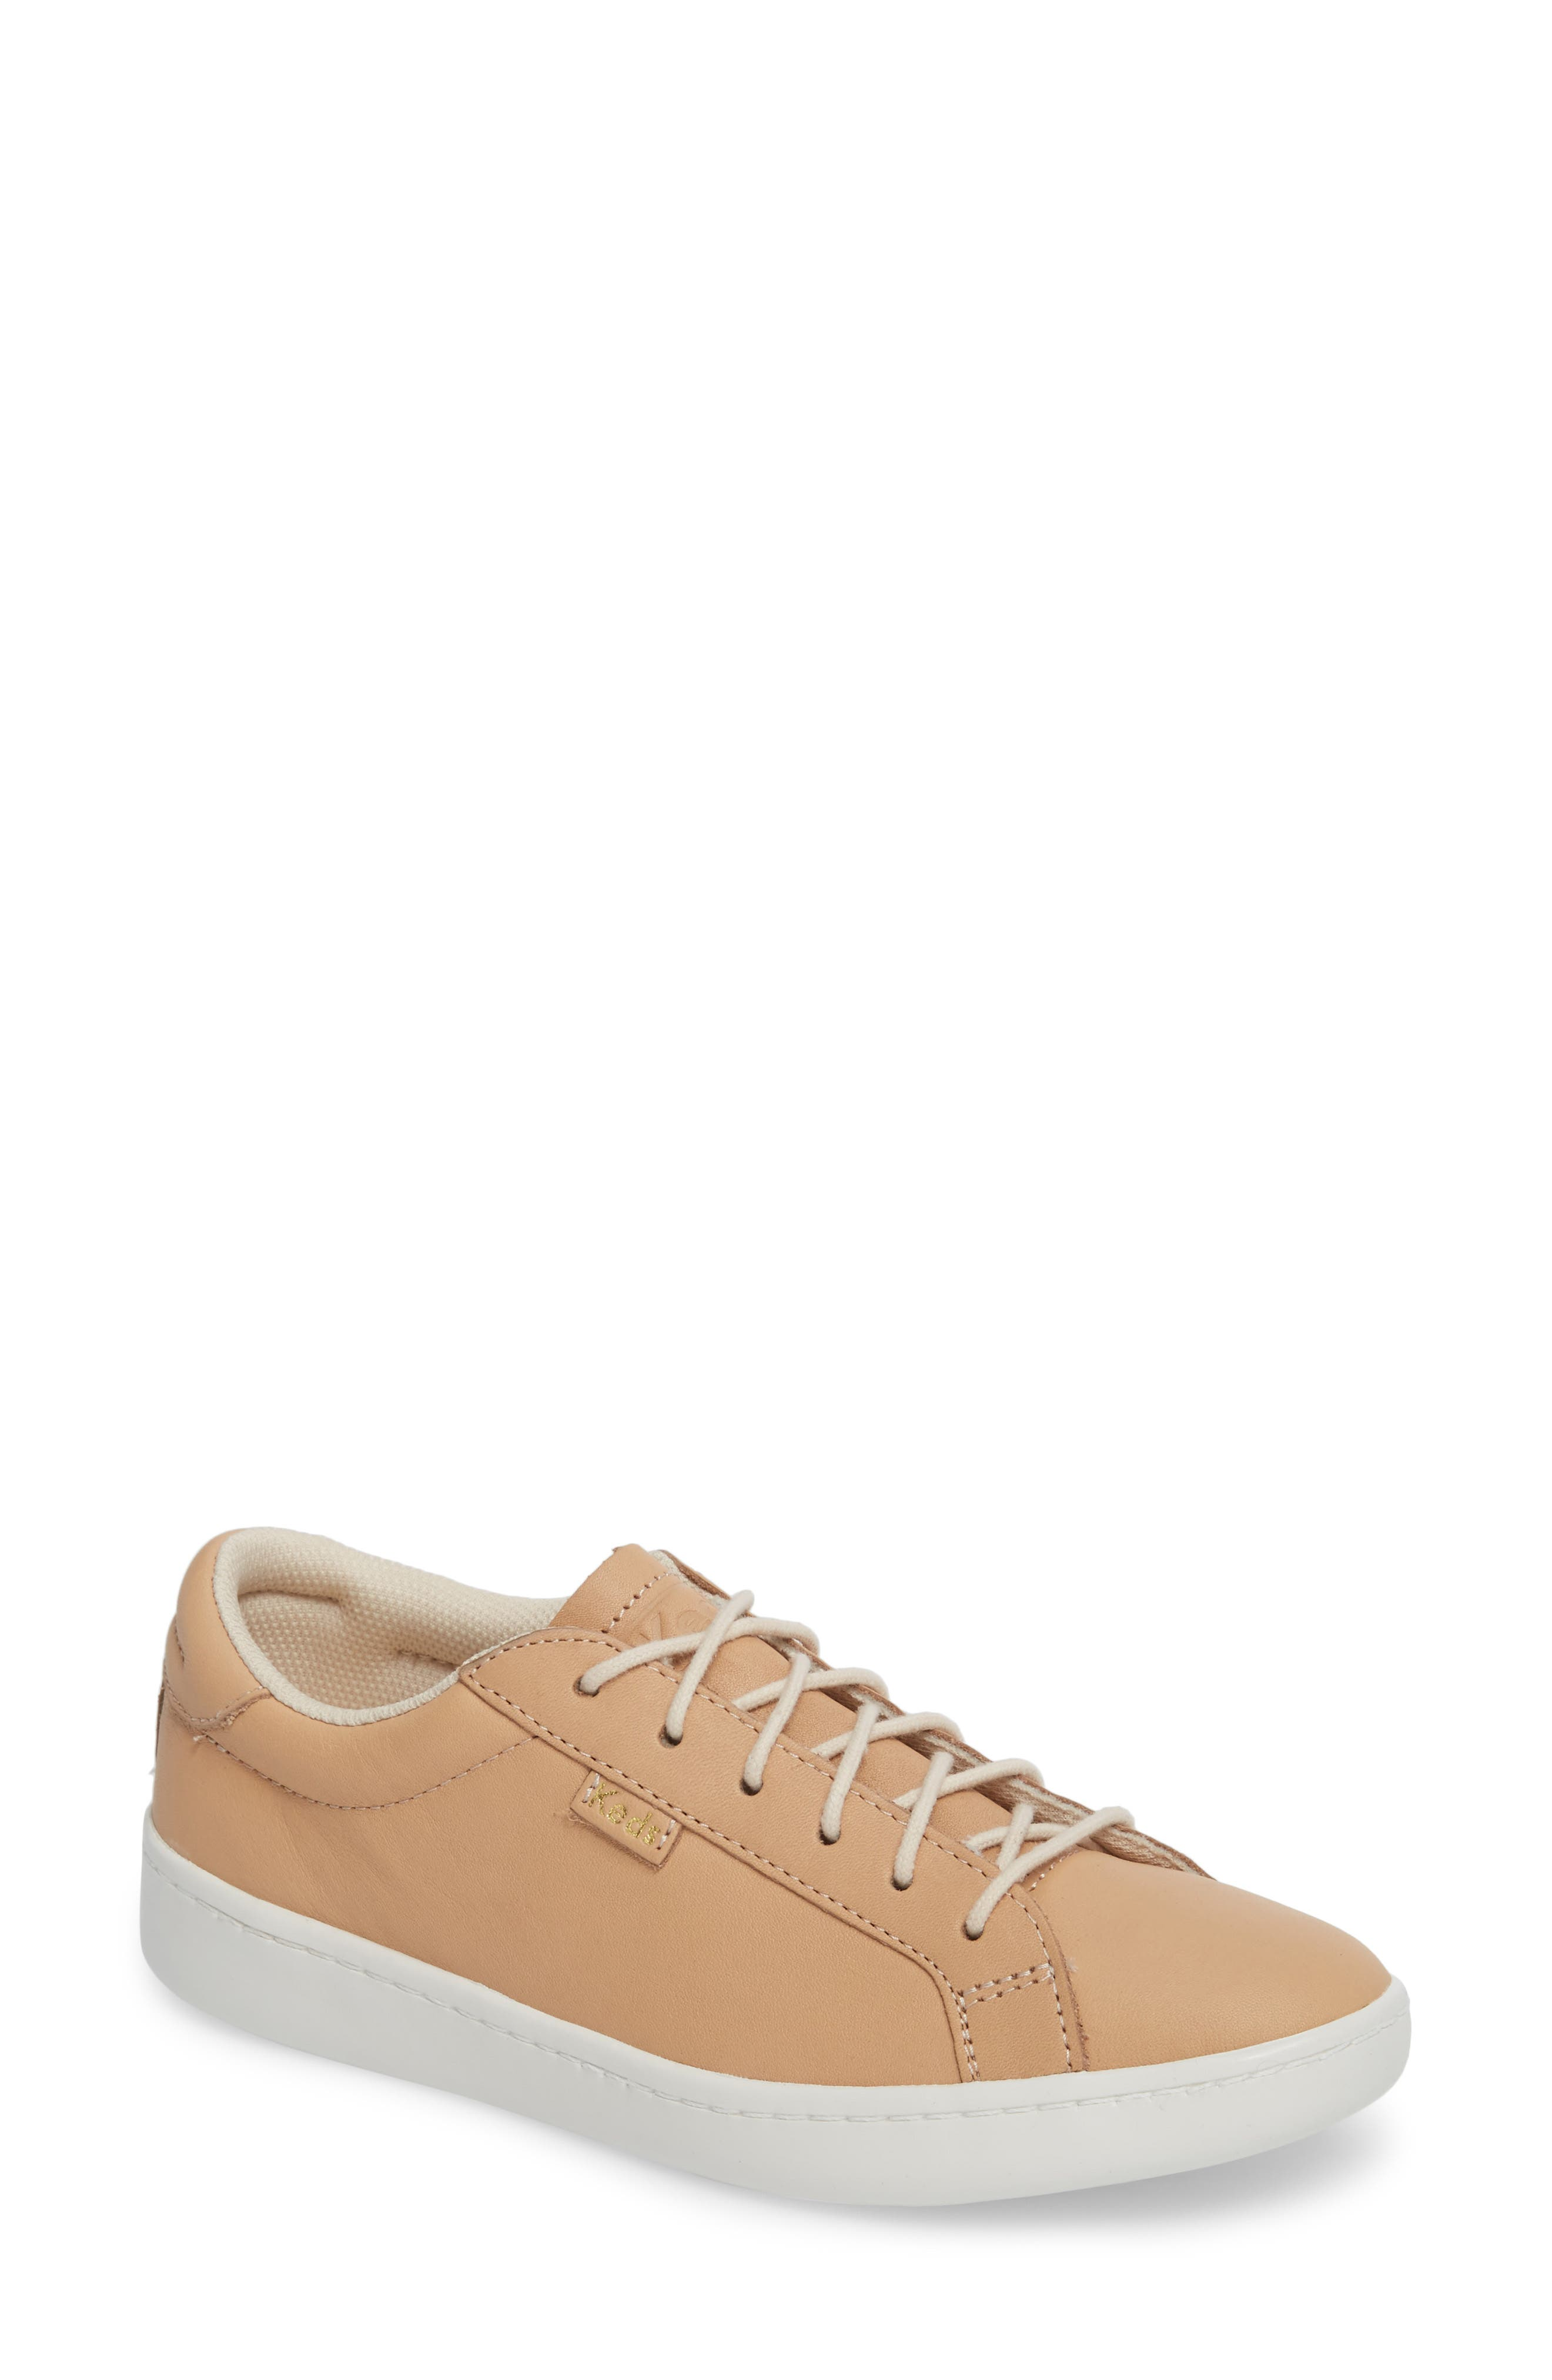 Ace Leather Sneaker,                             Main thumbnail 1, color,                             Natural